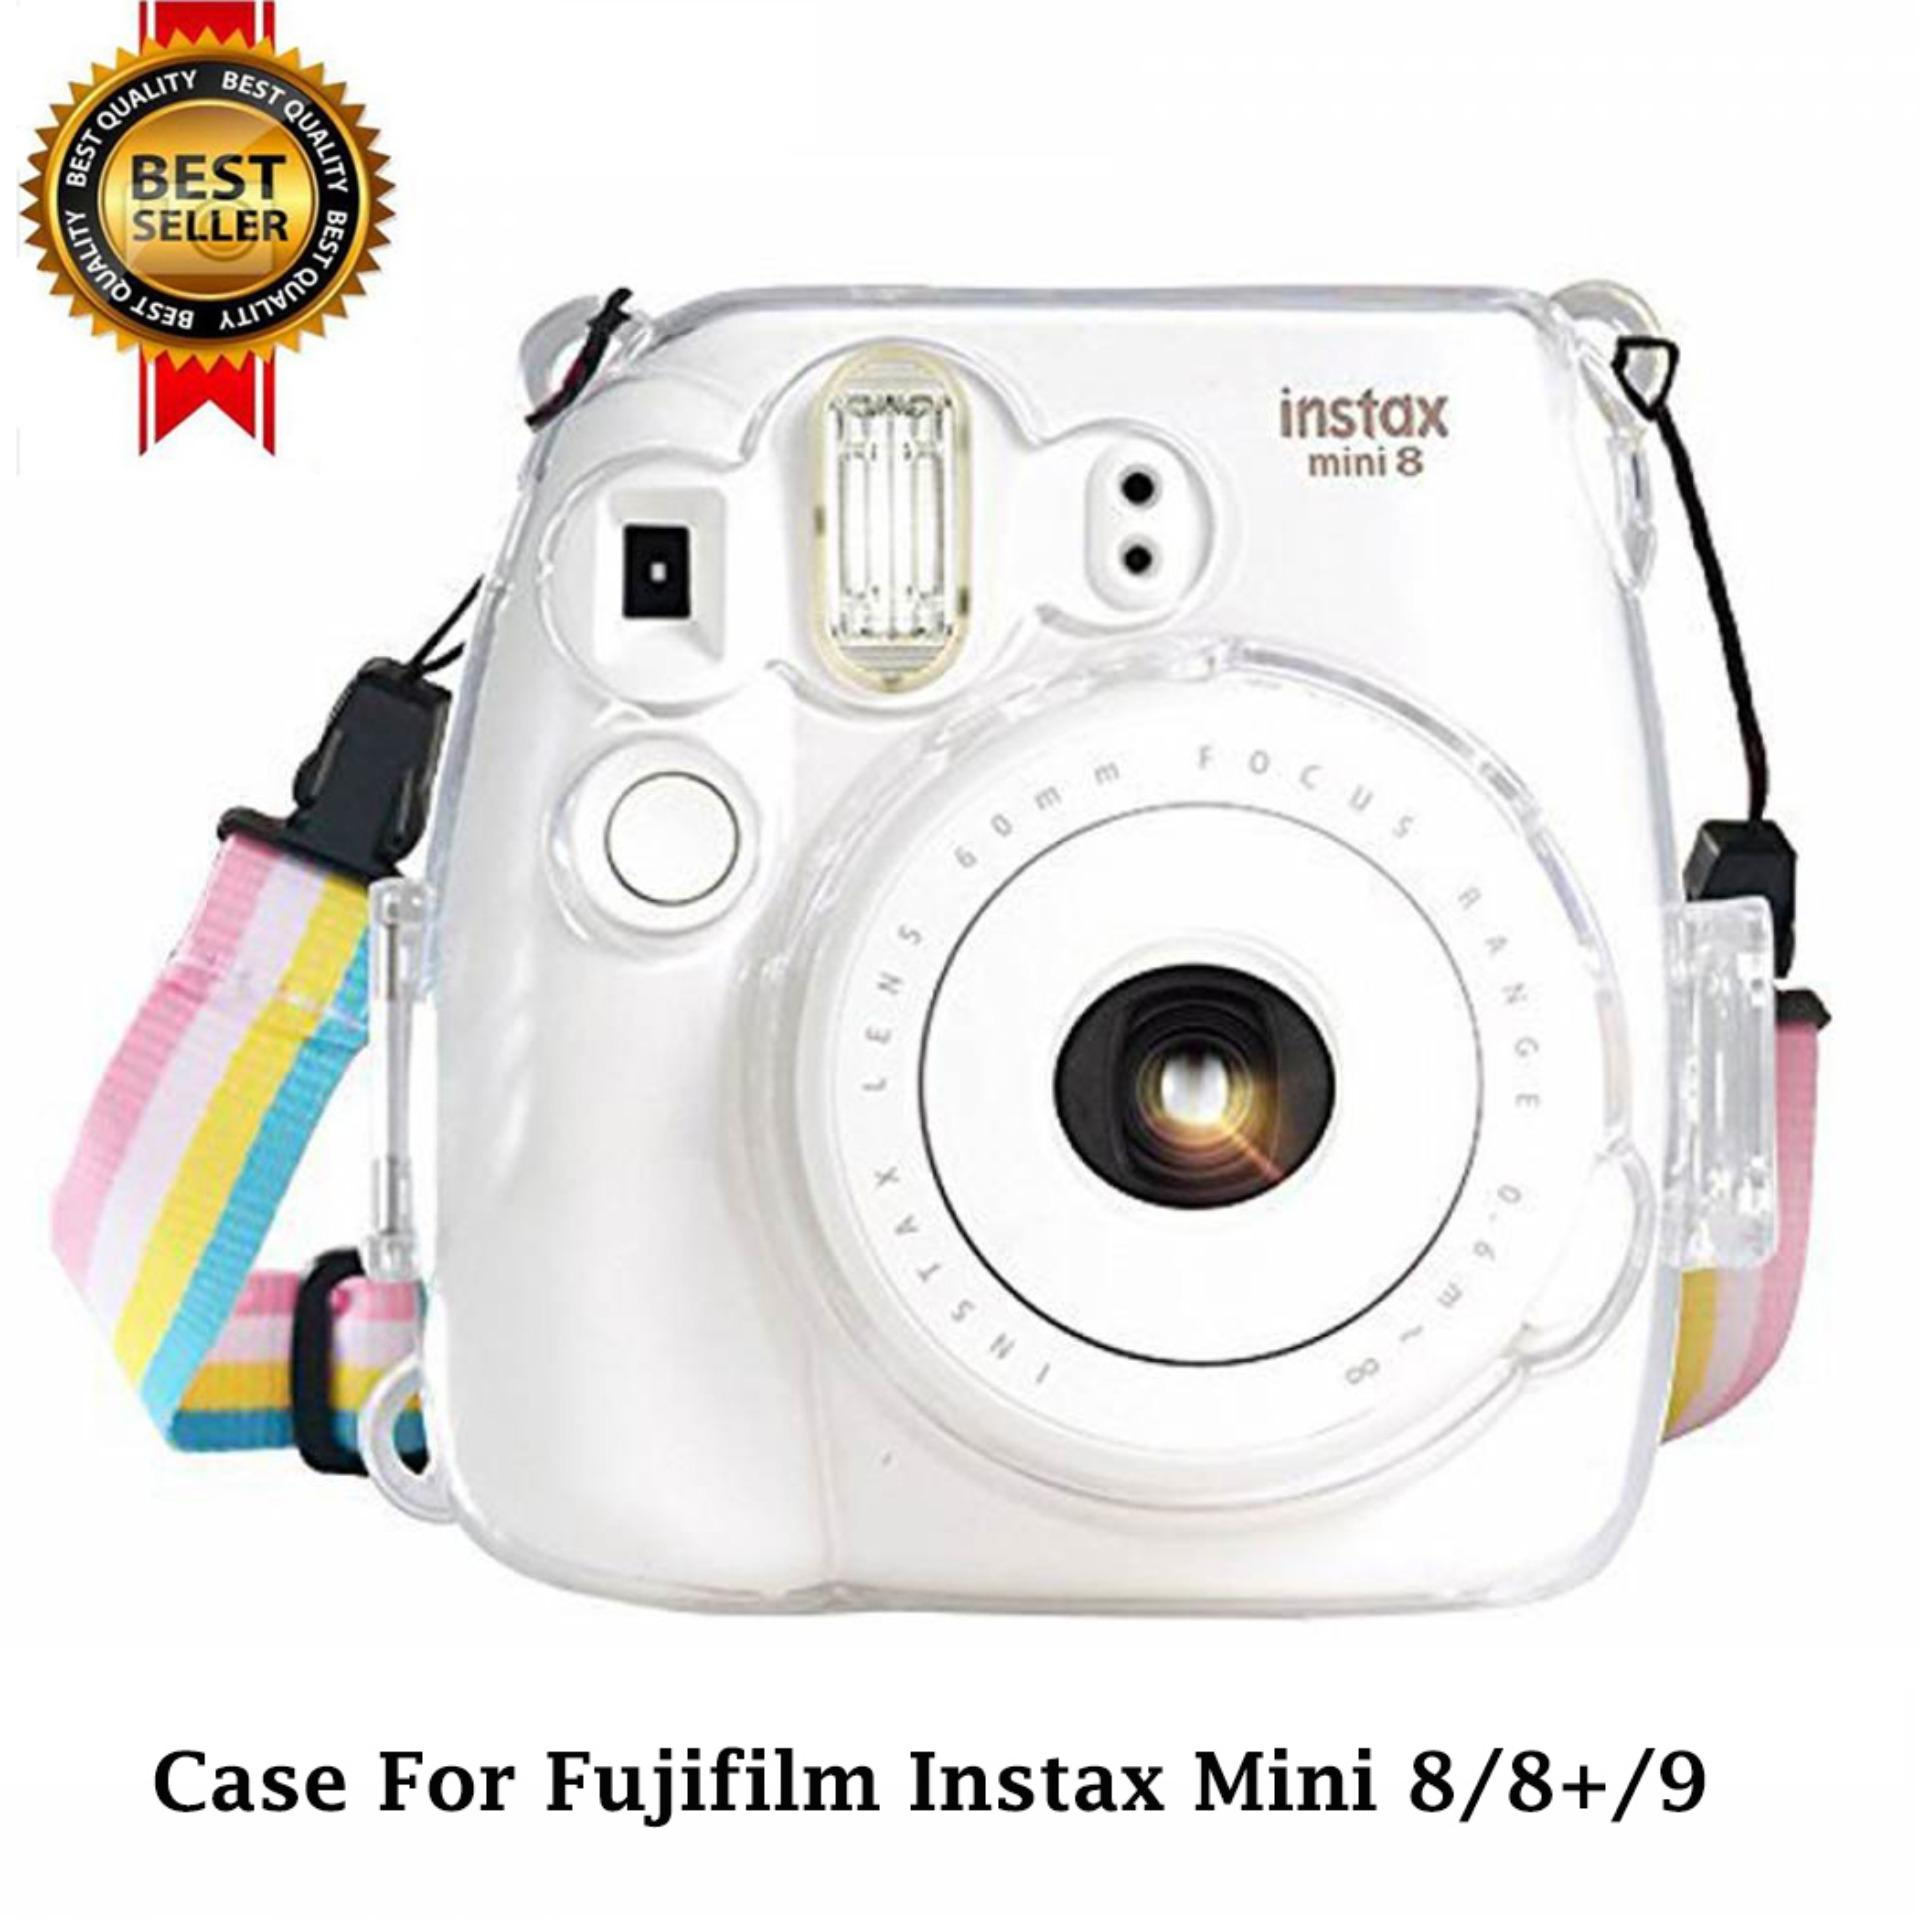 Portable Protective Case Accessory Cover Plastic Storage Bag with Removable Adjustable Shoulder Strap for Fujifilm Instax